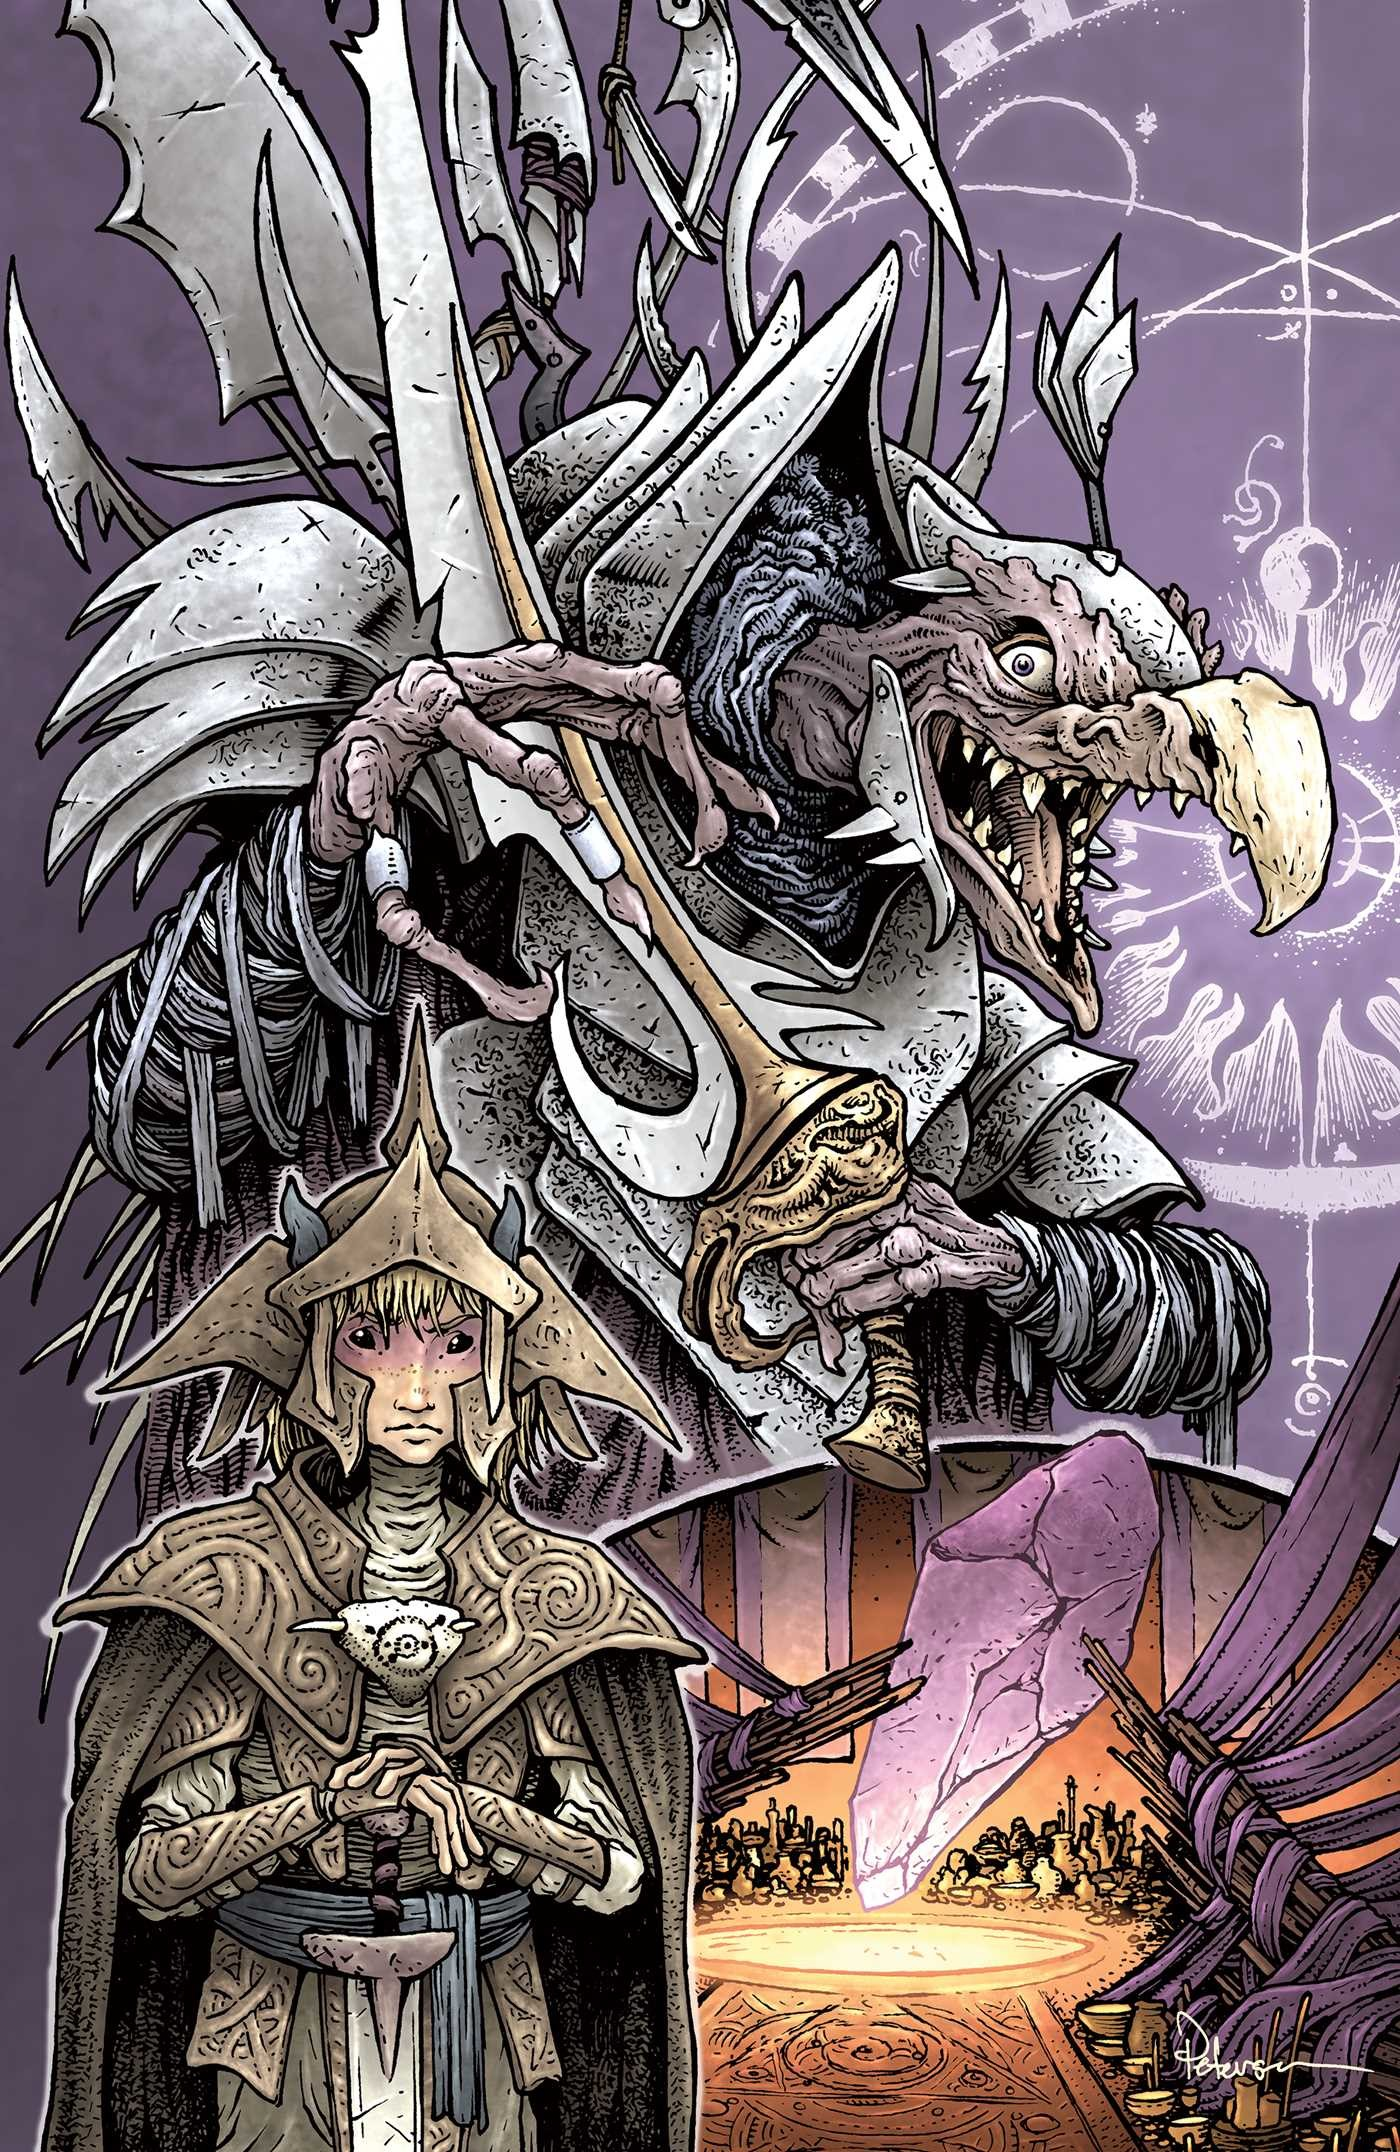 Jim hensons the dark crystal artist tribute 9781684151820.in04